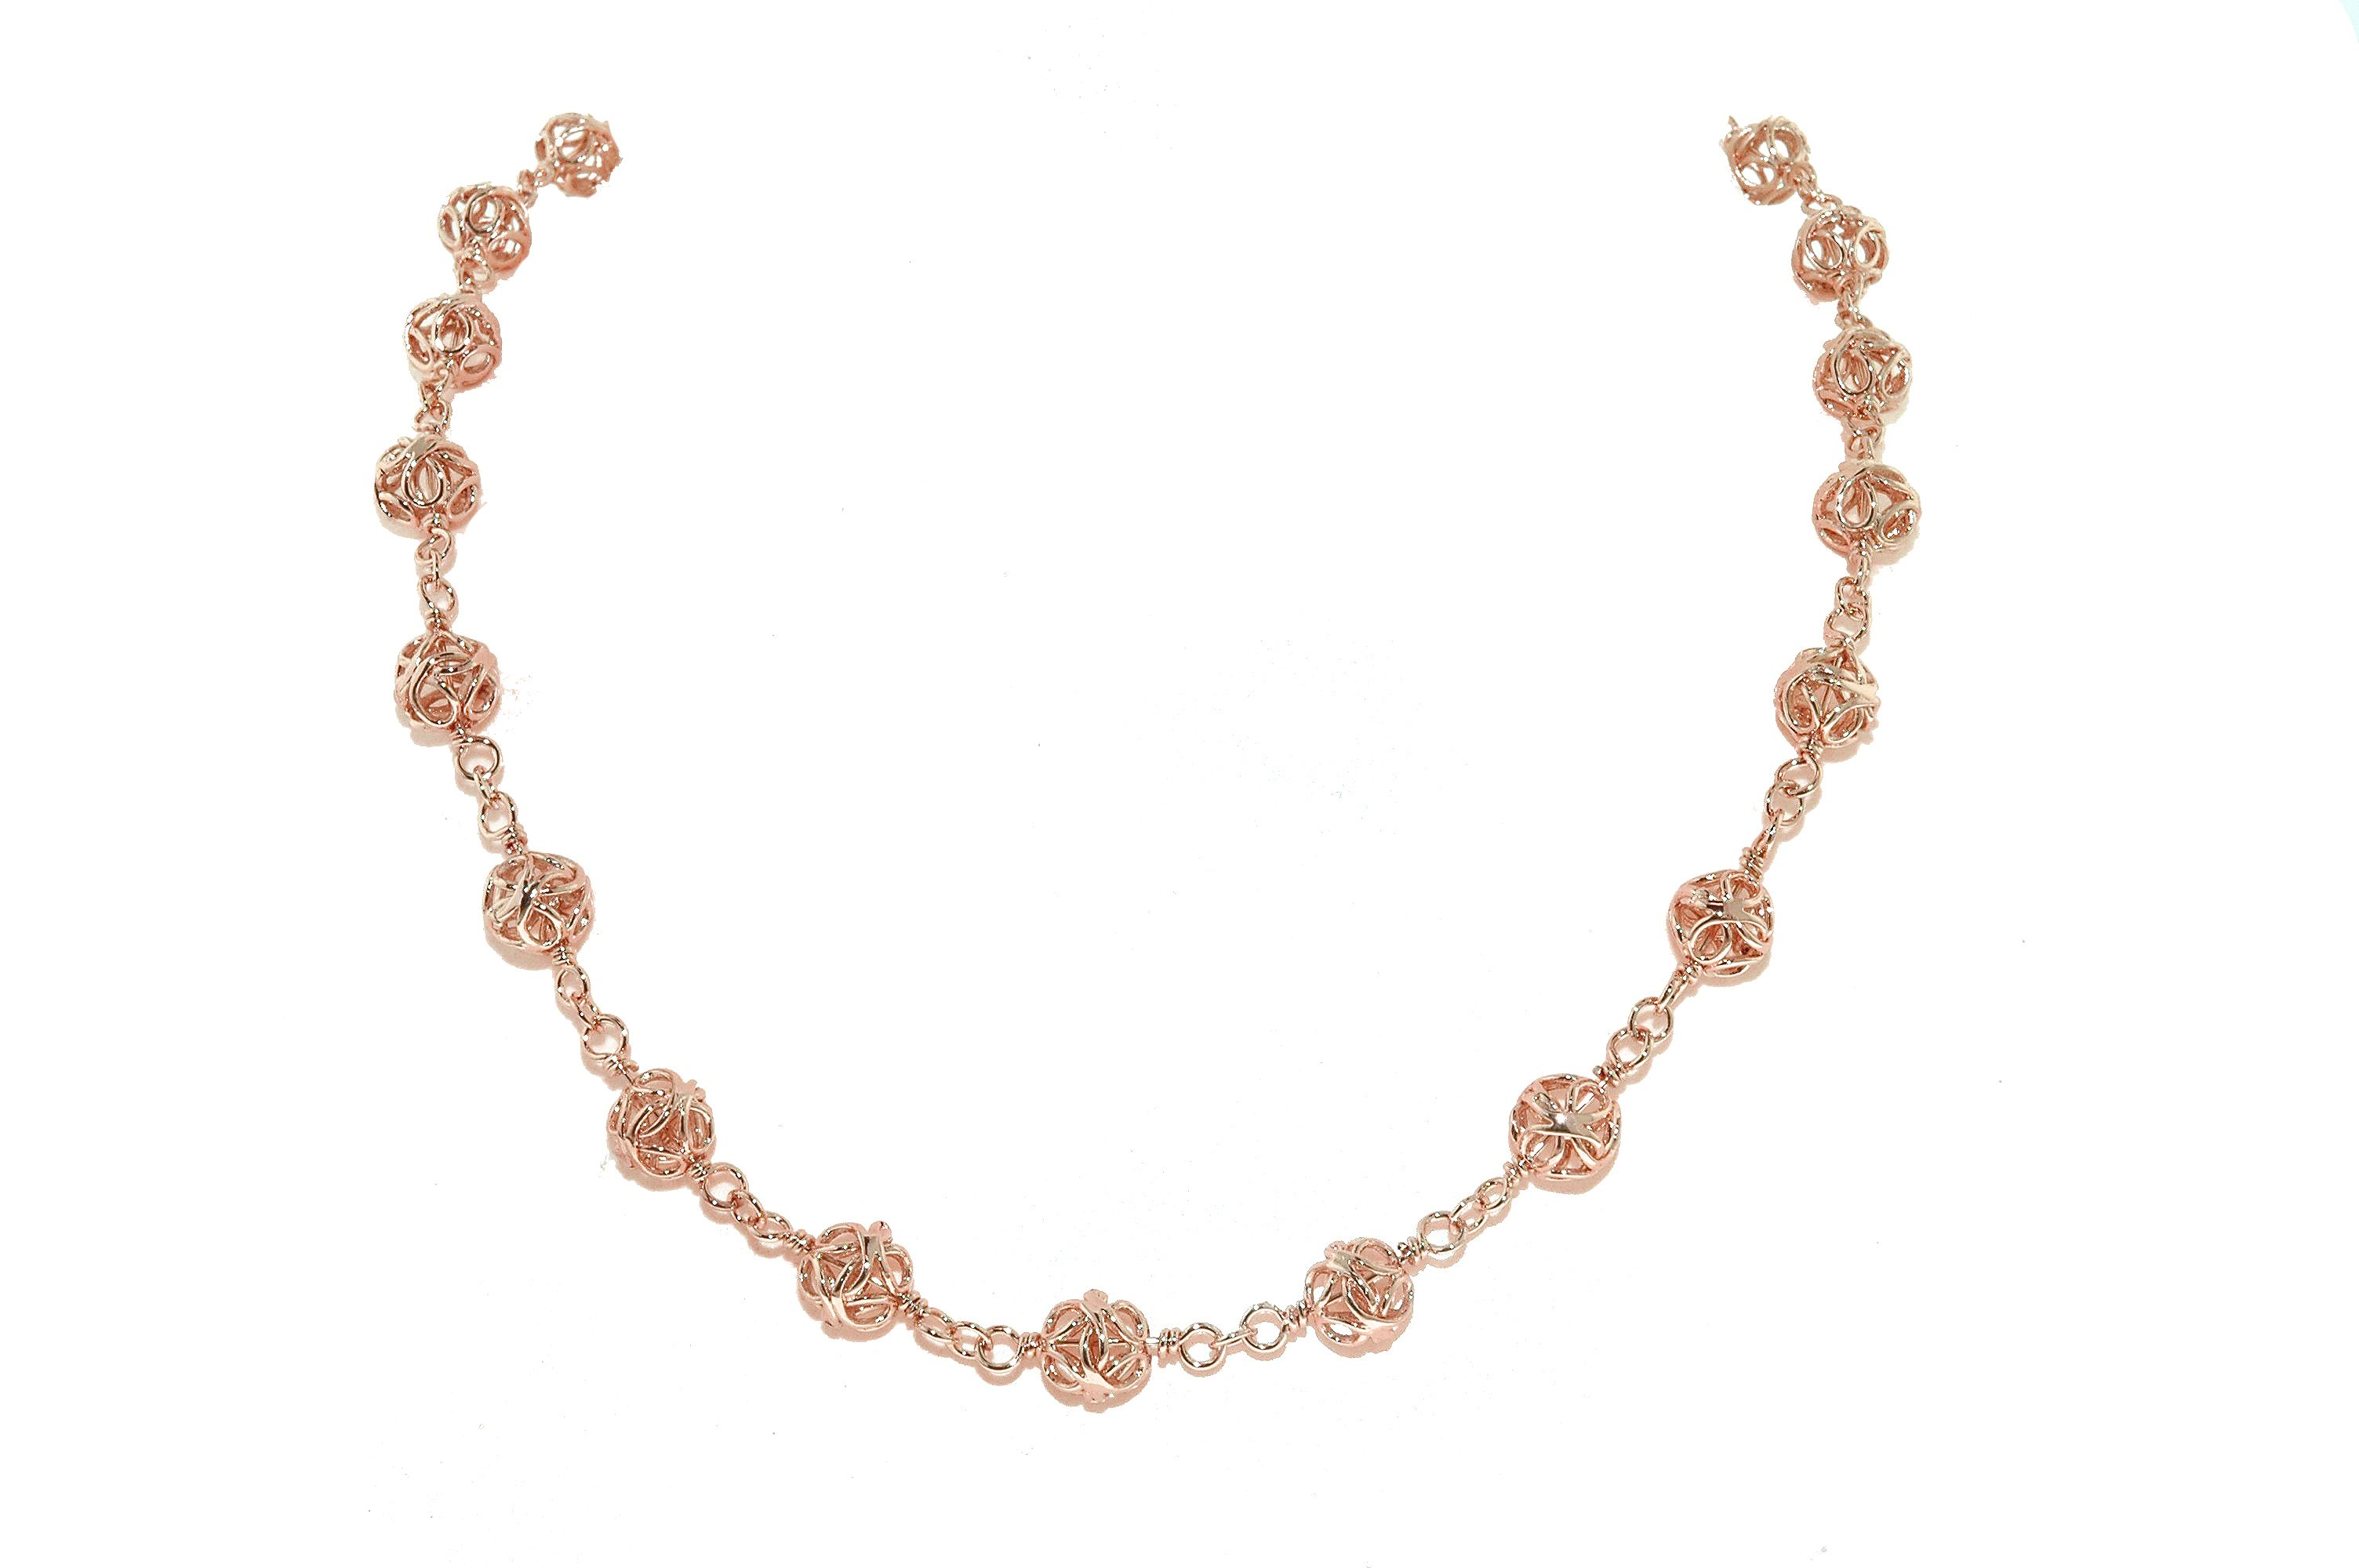 Rose gold filigree bead necklace